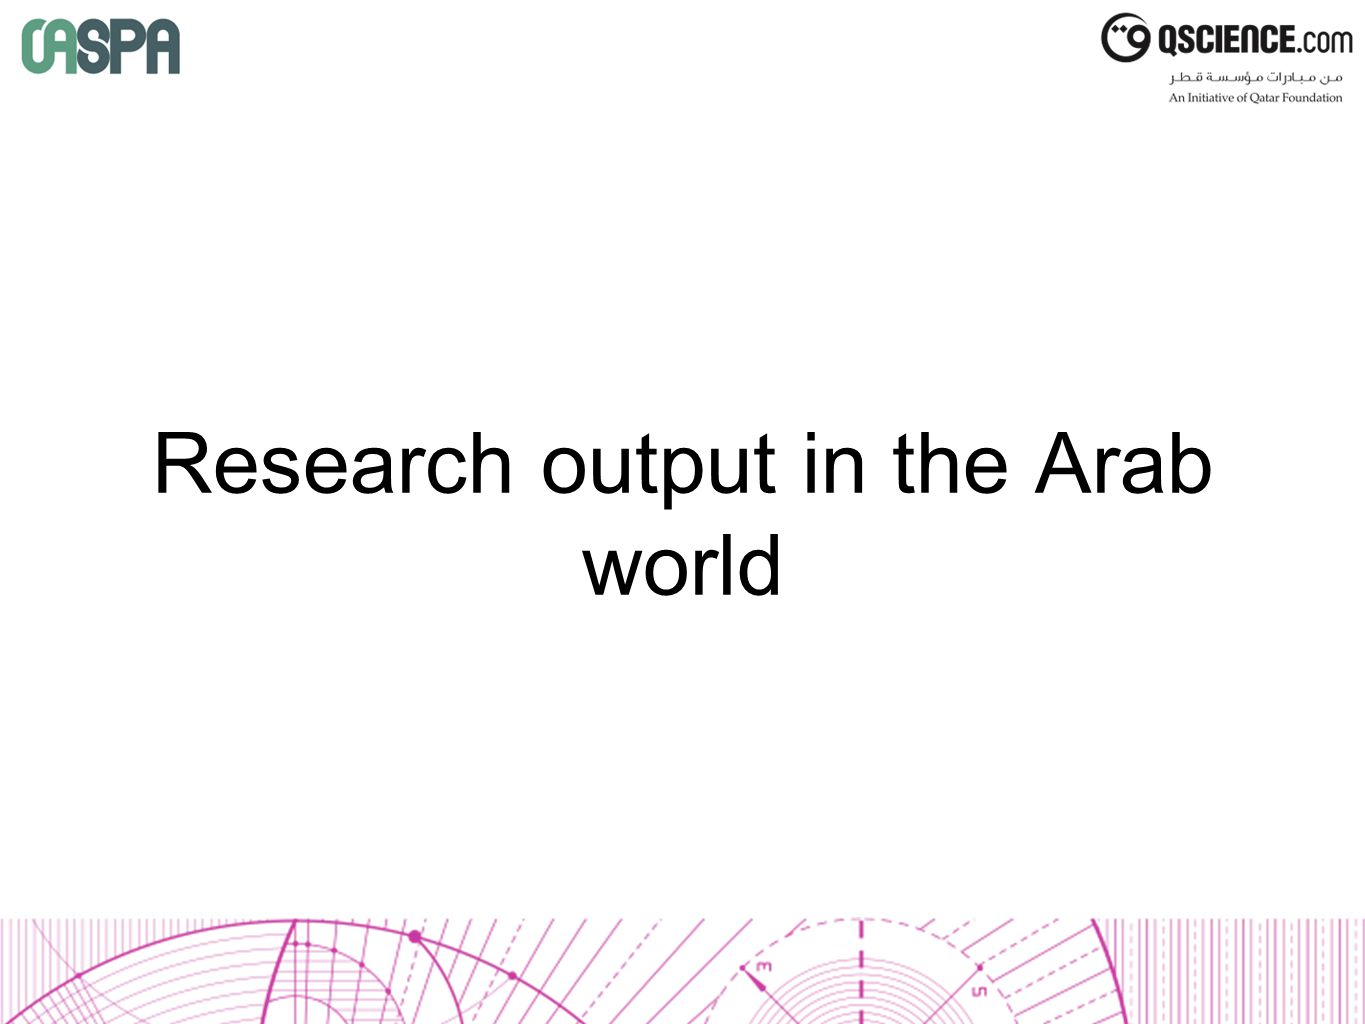 Research output in the Arab world